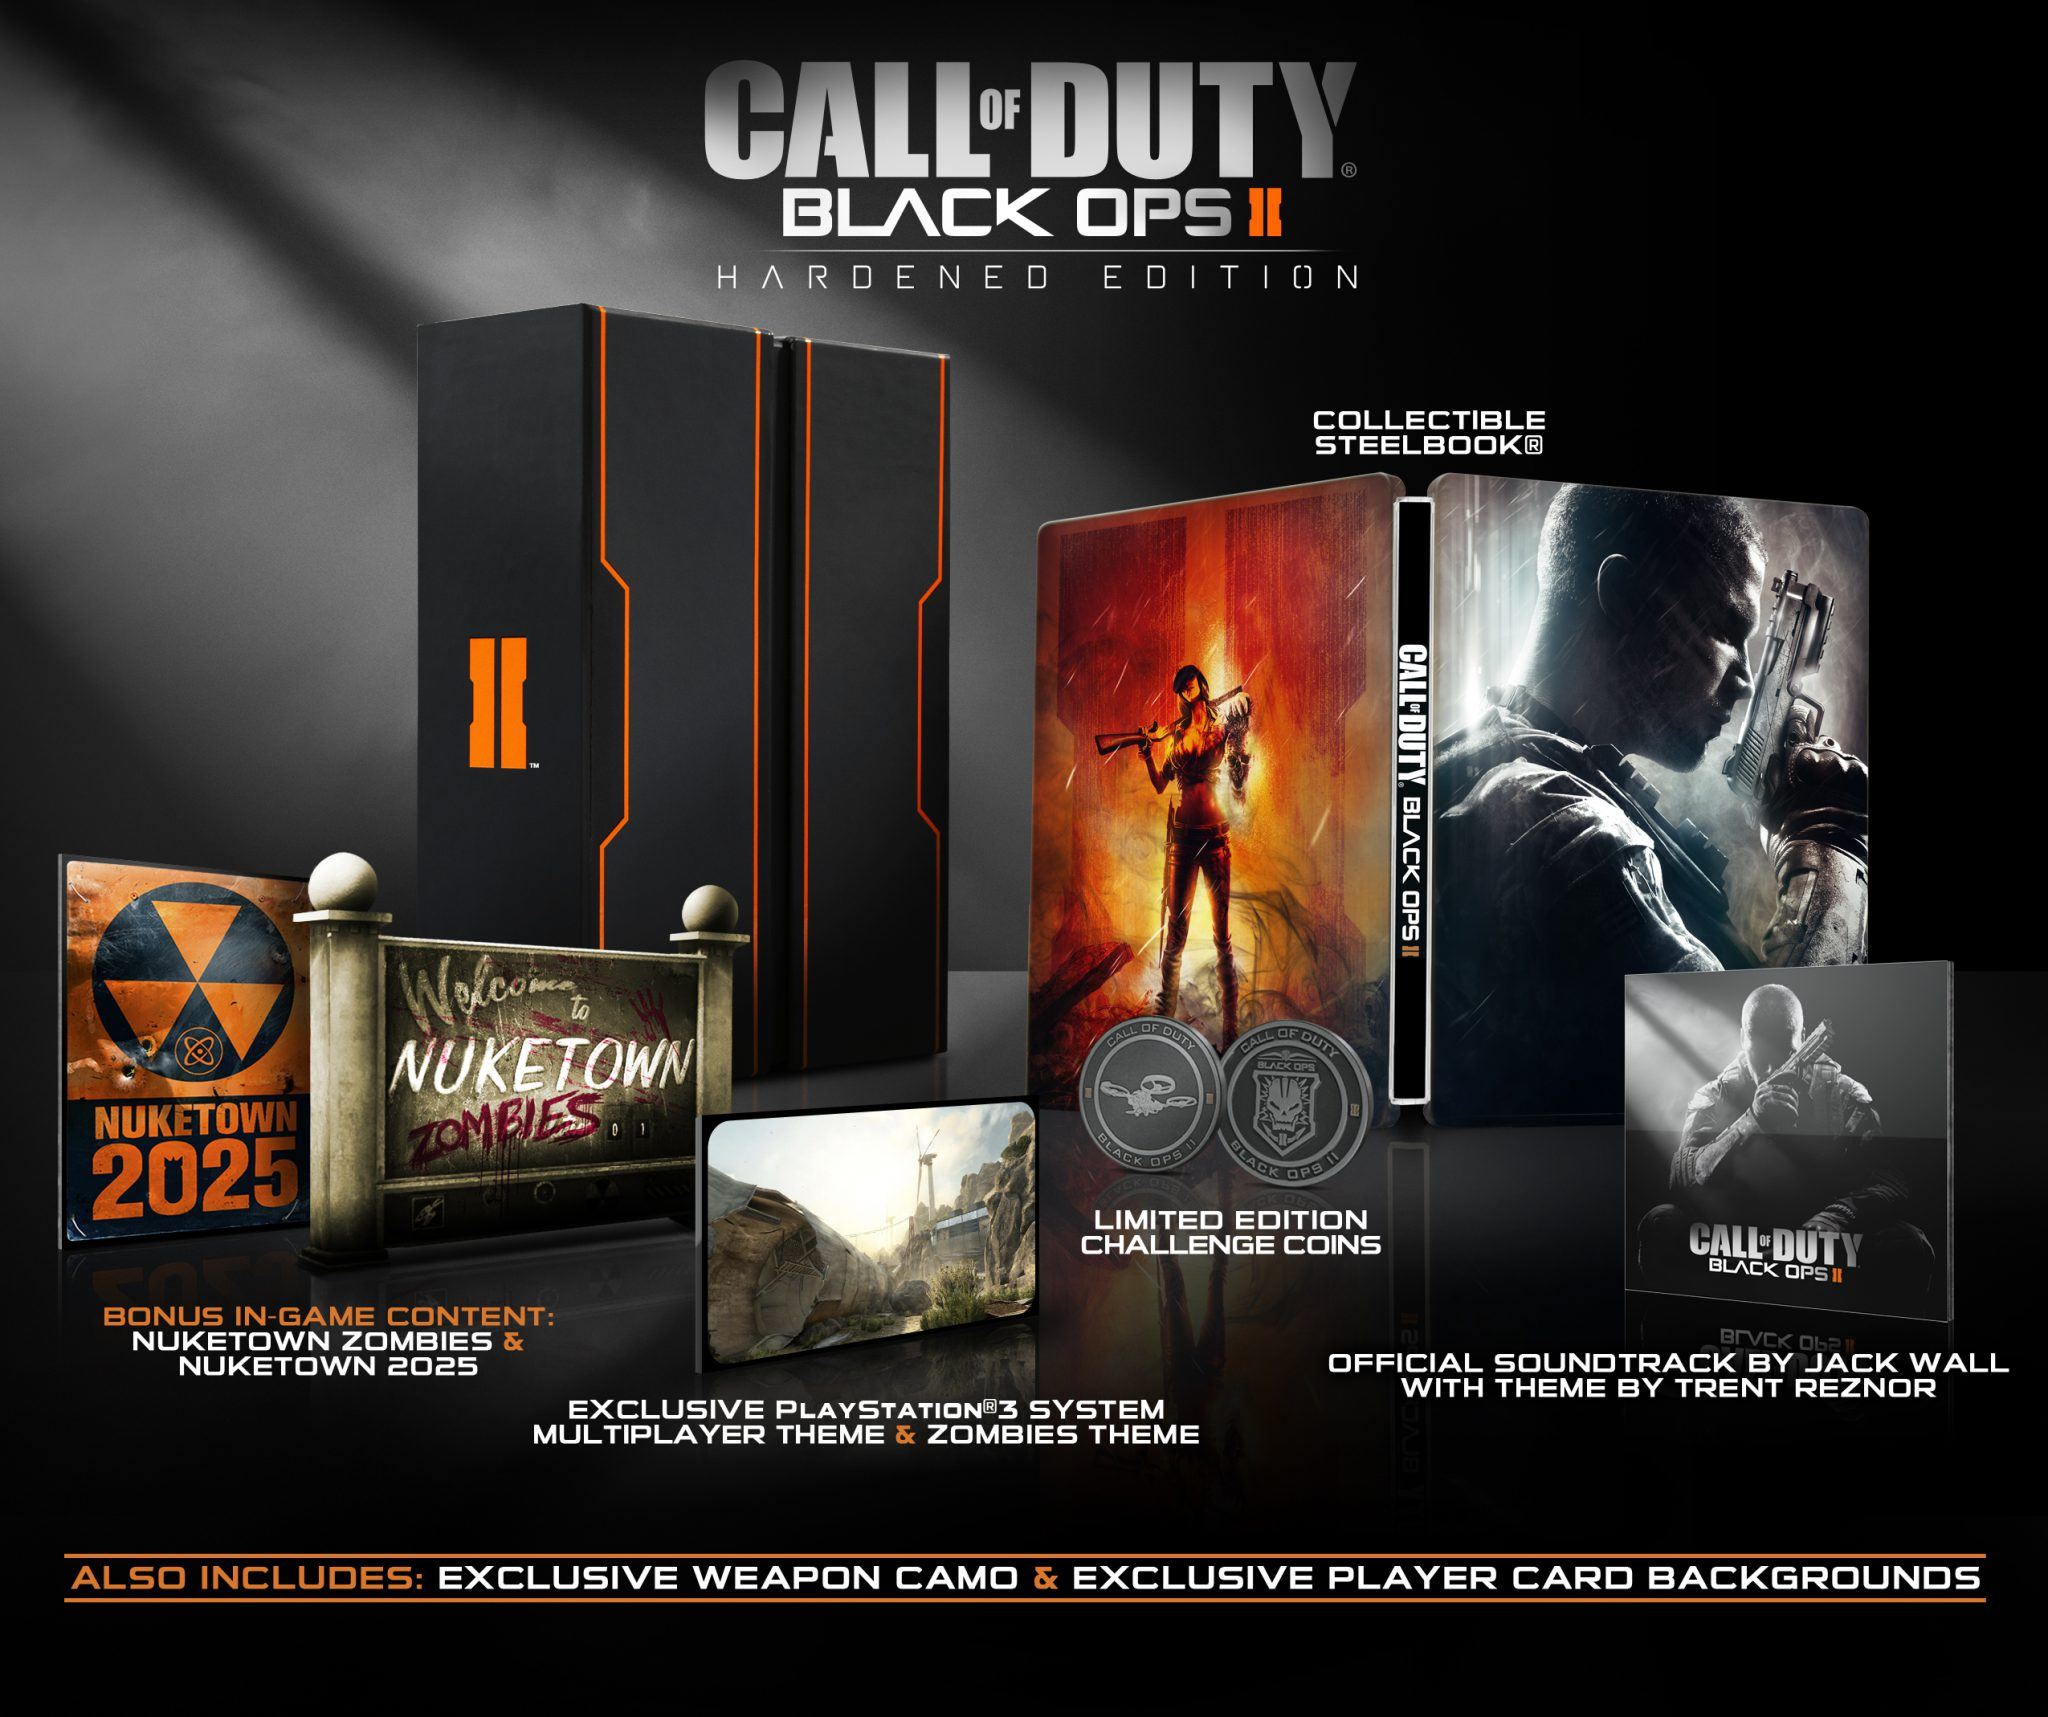 Call of Duty Black Ops II_Hardened Edition_PS3